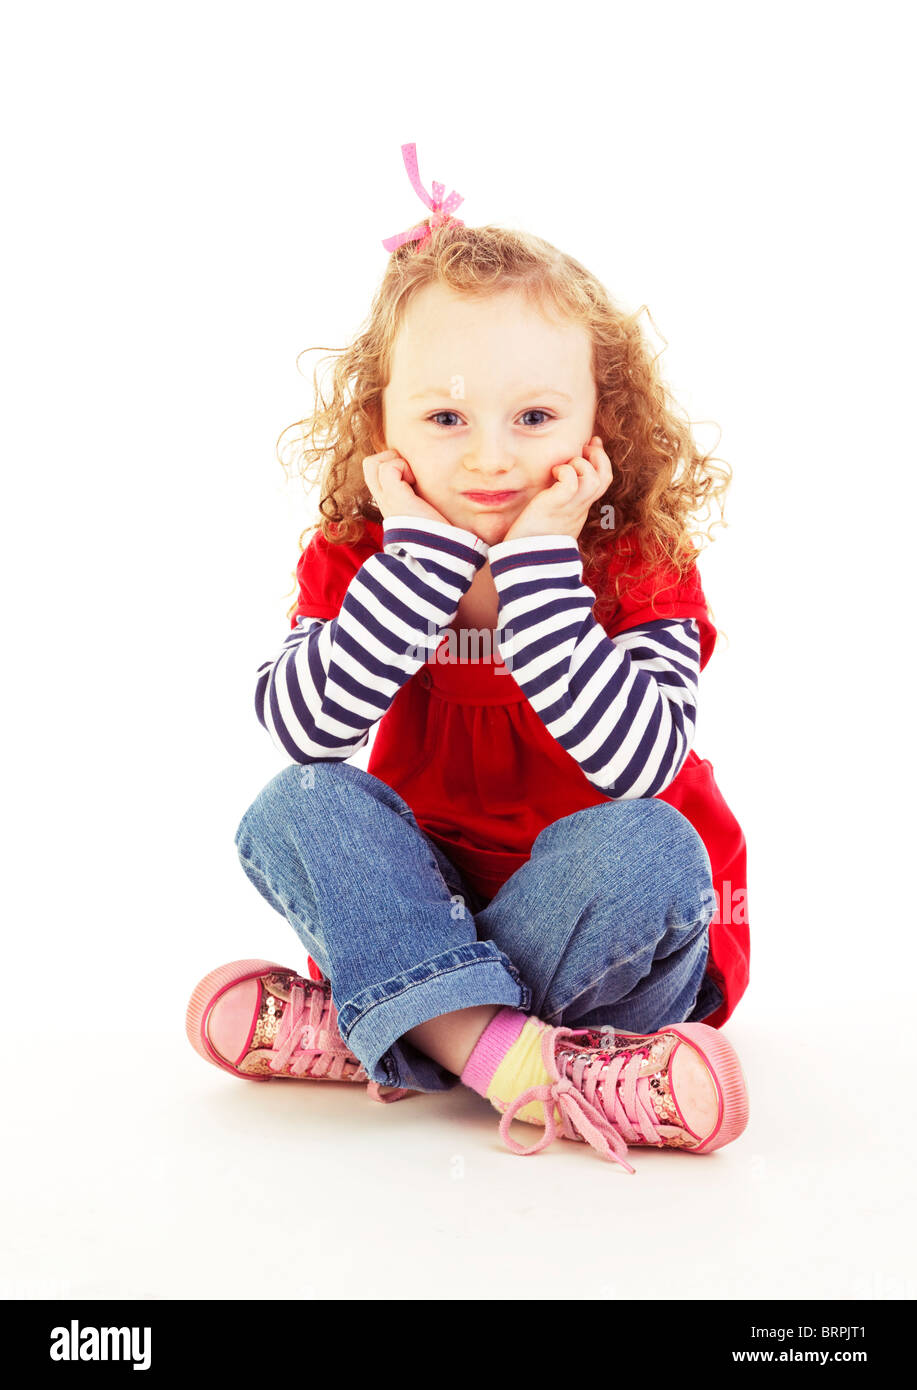 portrait of young girl looking bored and stroppy - Stock Image